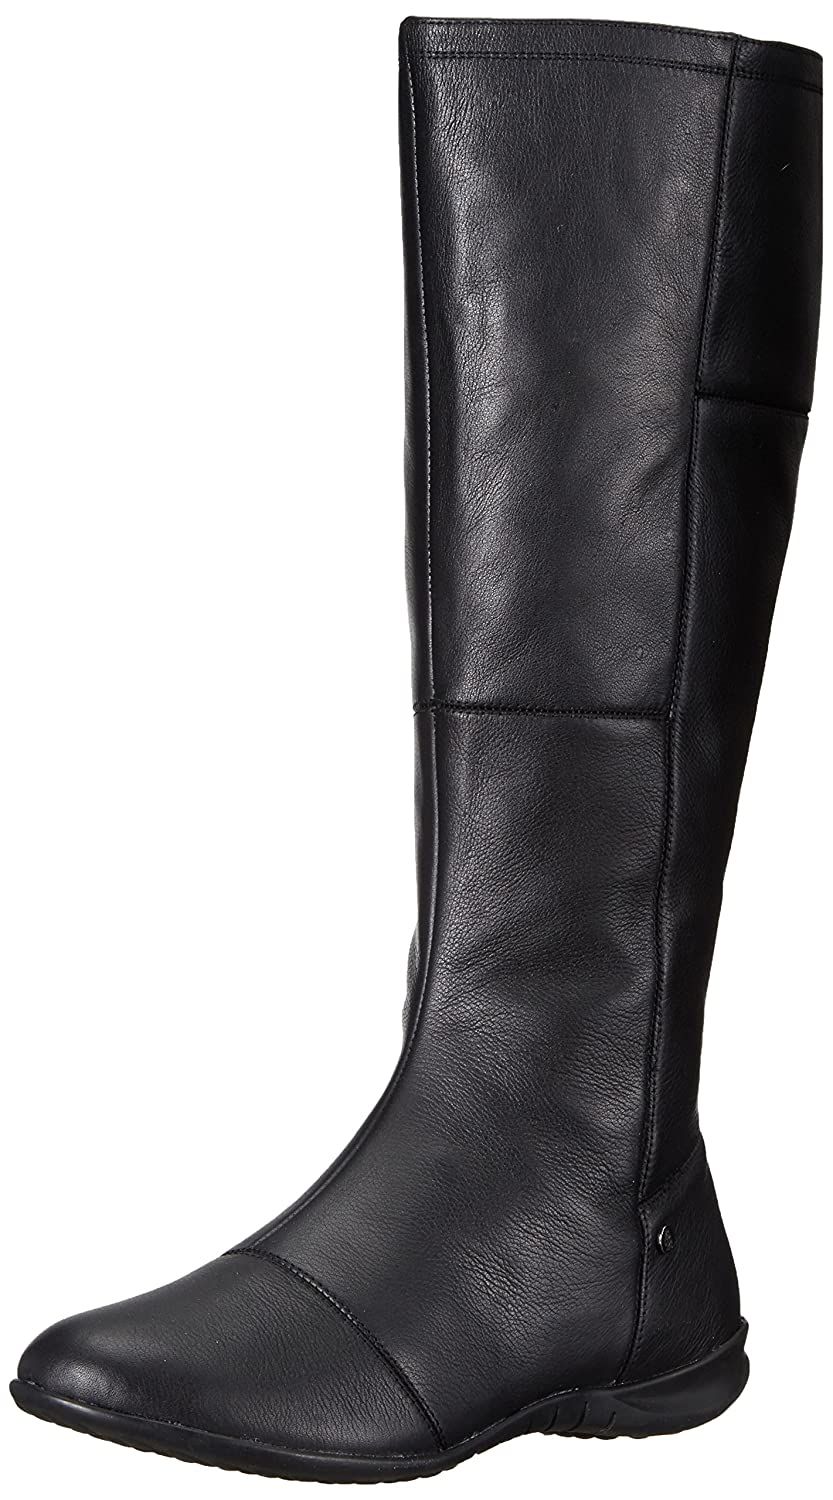 Hush Puppies Women's Lilli Bria Boot B01MSCZUYV 6 B(M) US|Black Wp